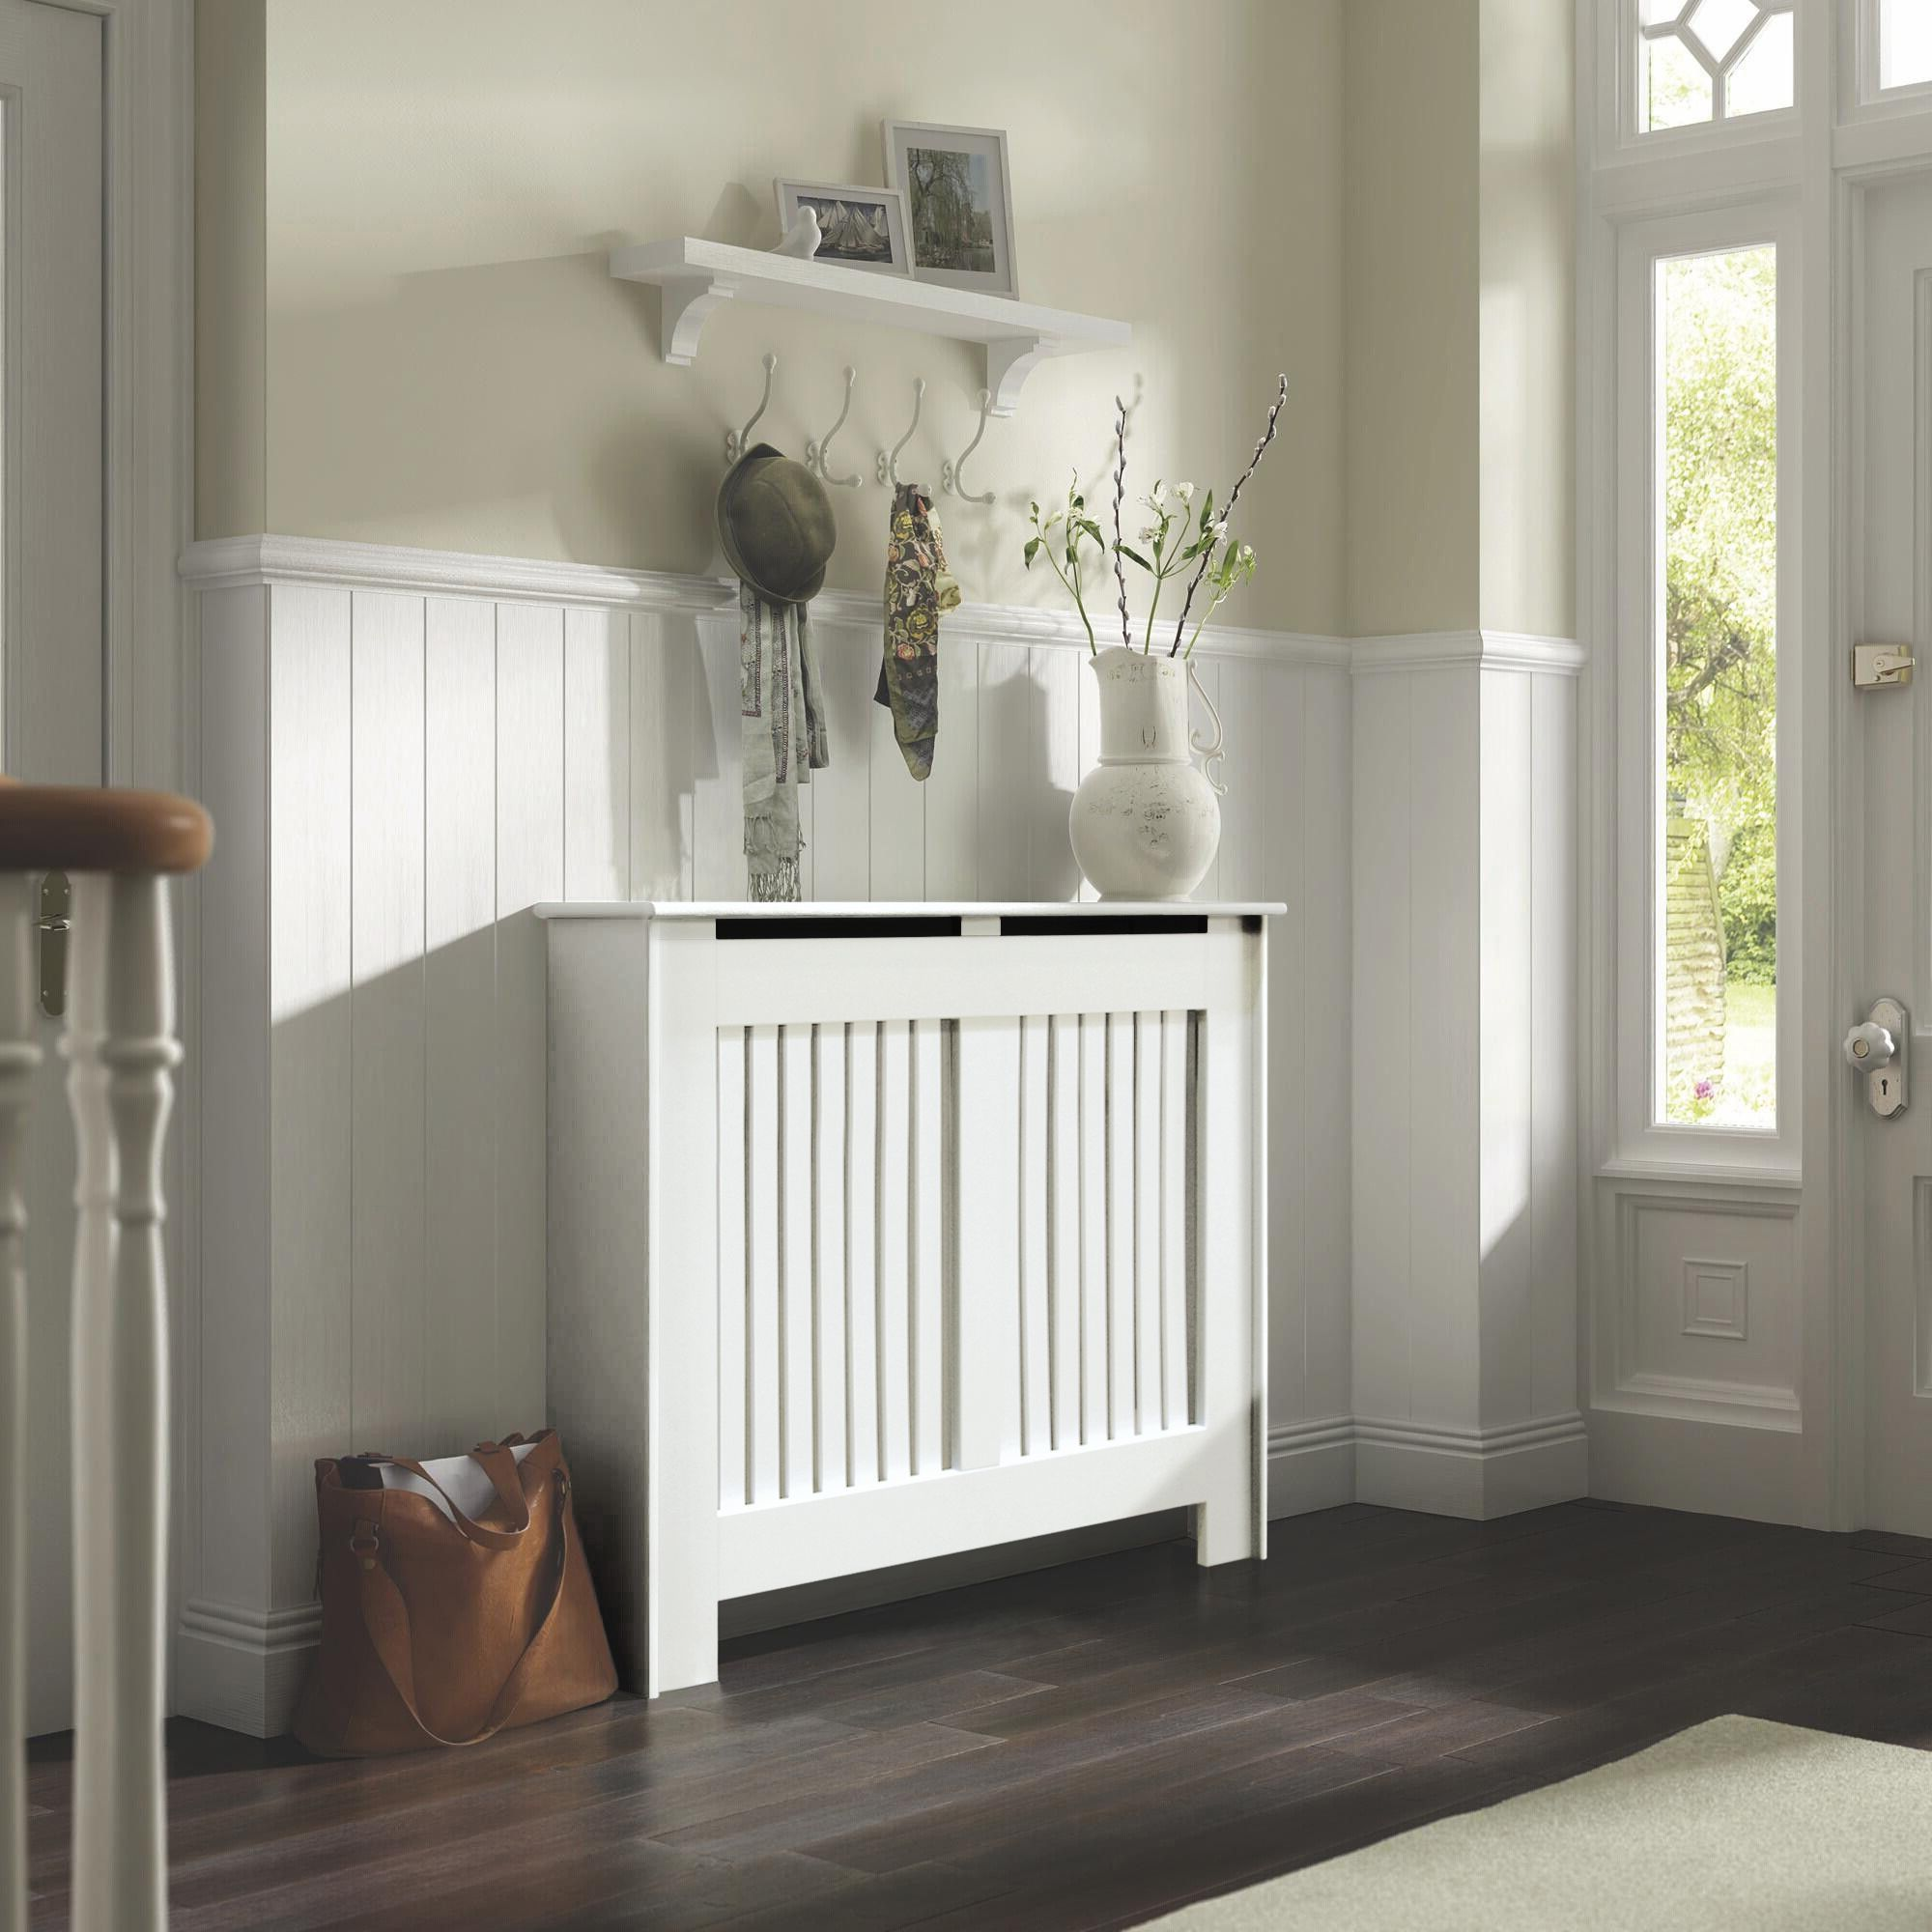 cast iron outdoor chairs hanging yoga chair kensington medium white painted radiator cover | departments diy at b&q